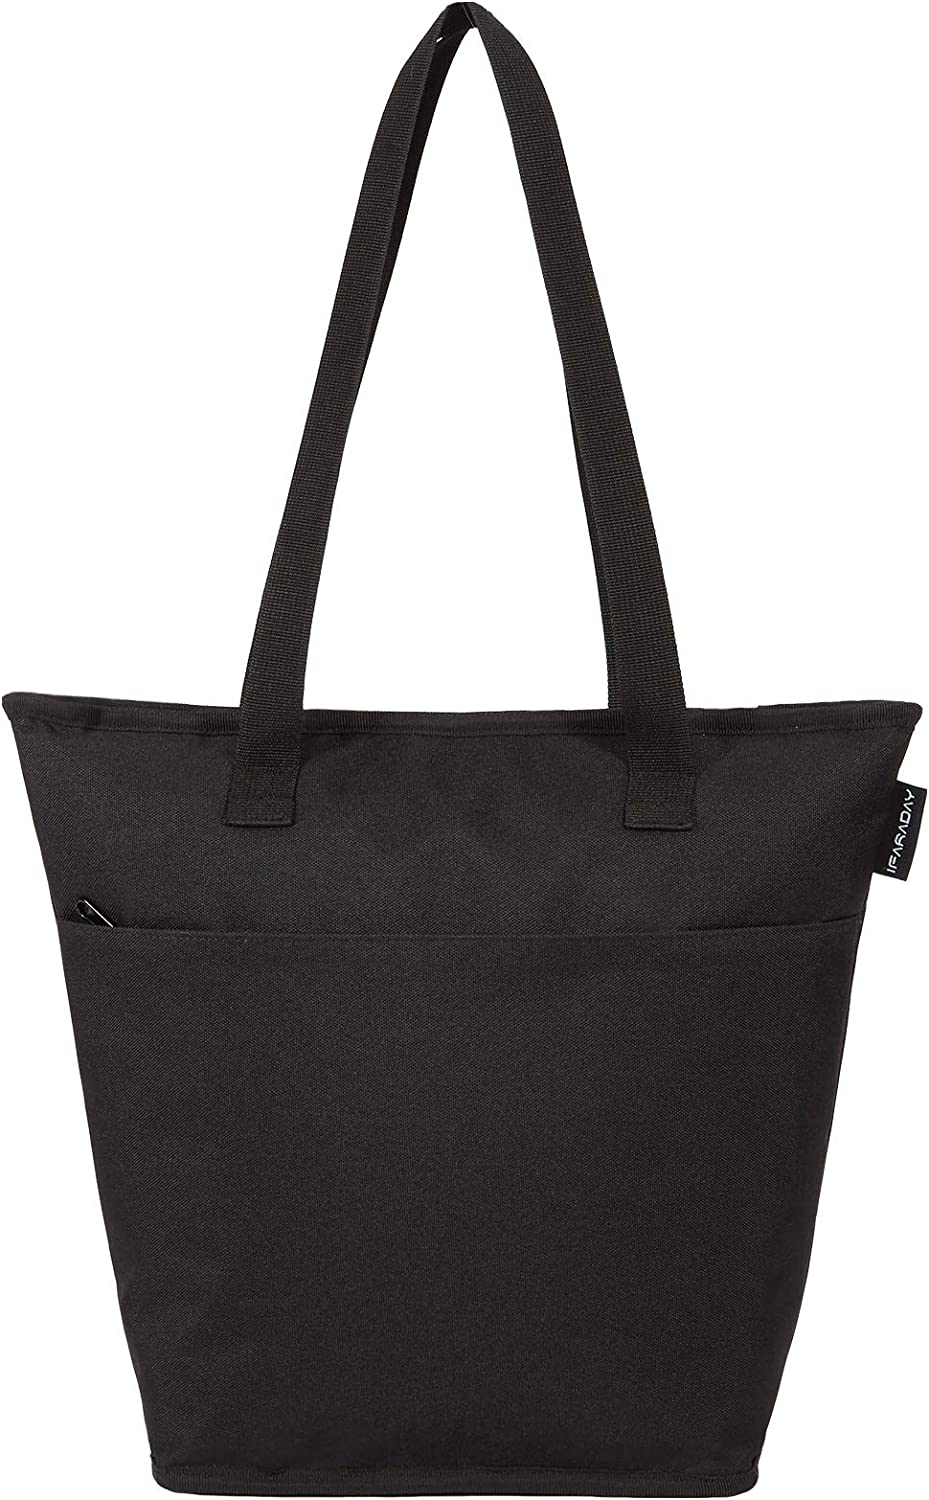 Insulated Lunch Bag Tote Reusable Leakproof for Work